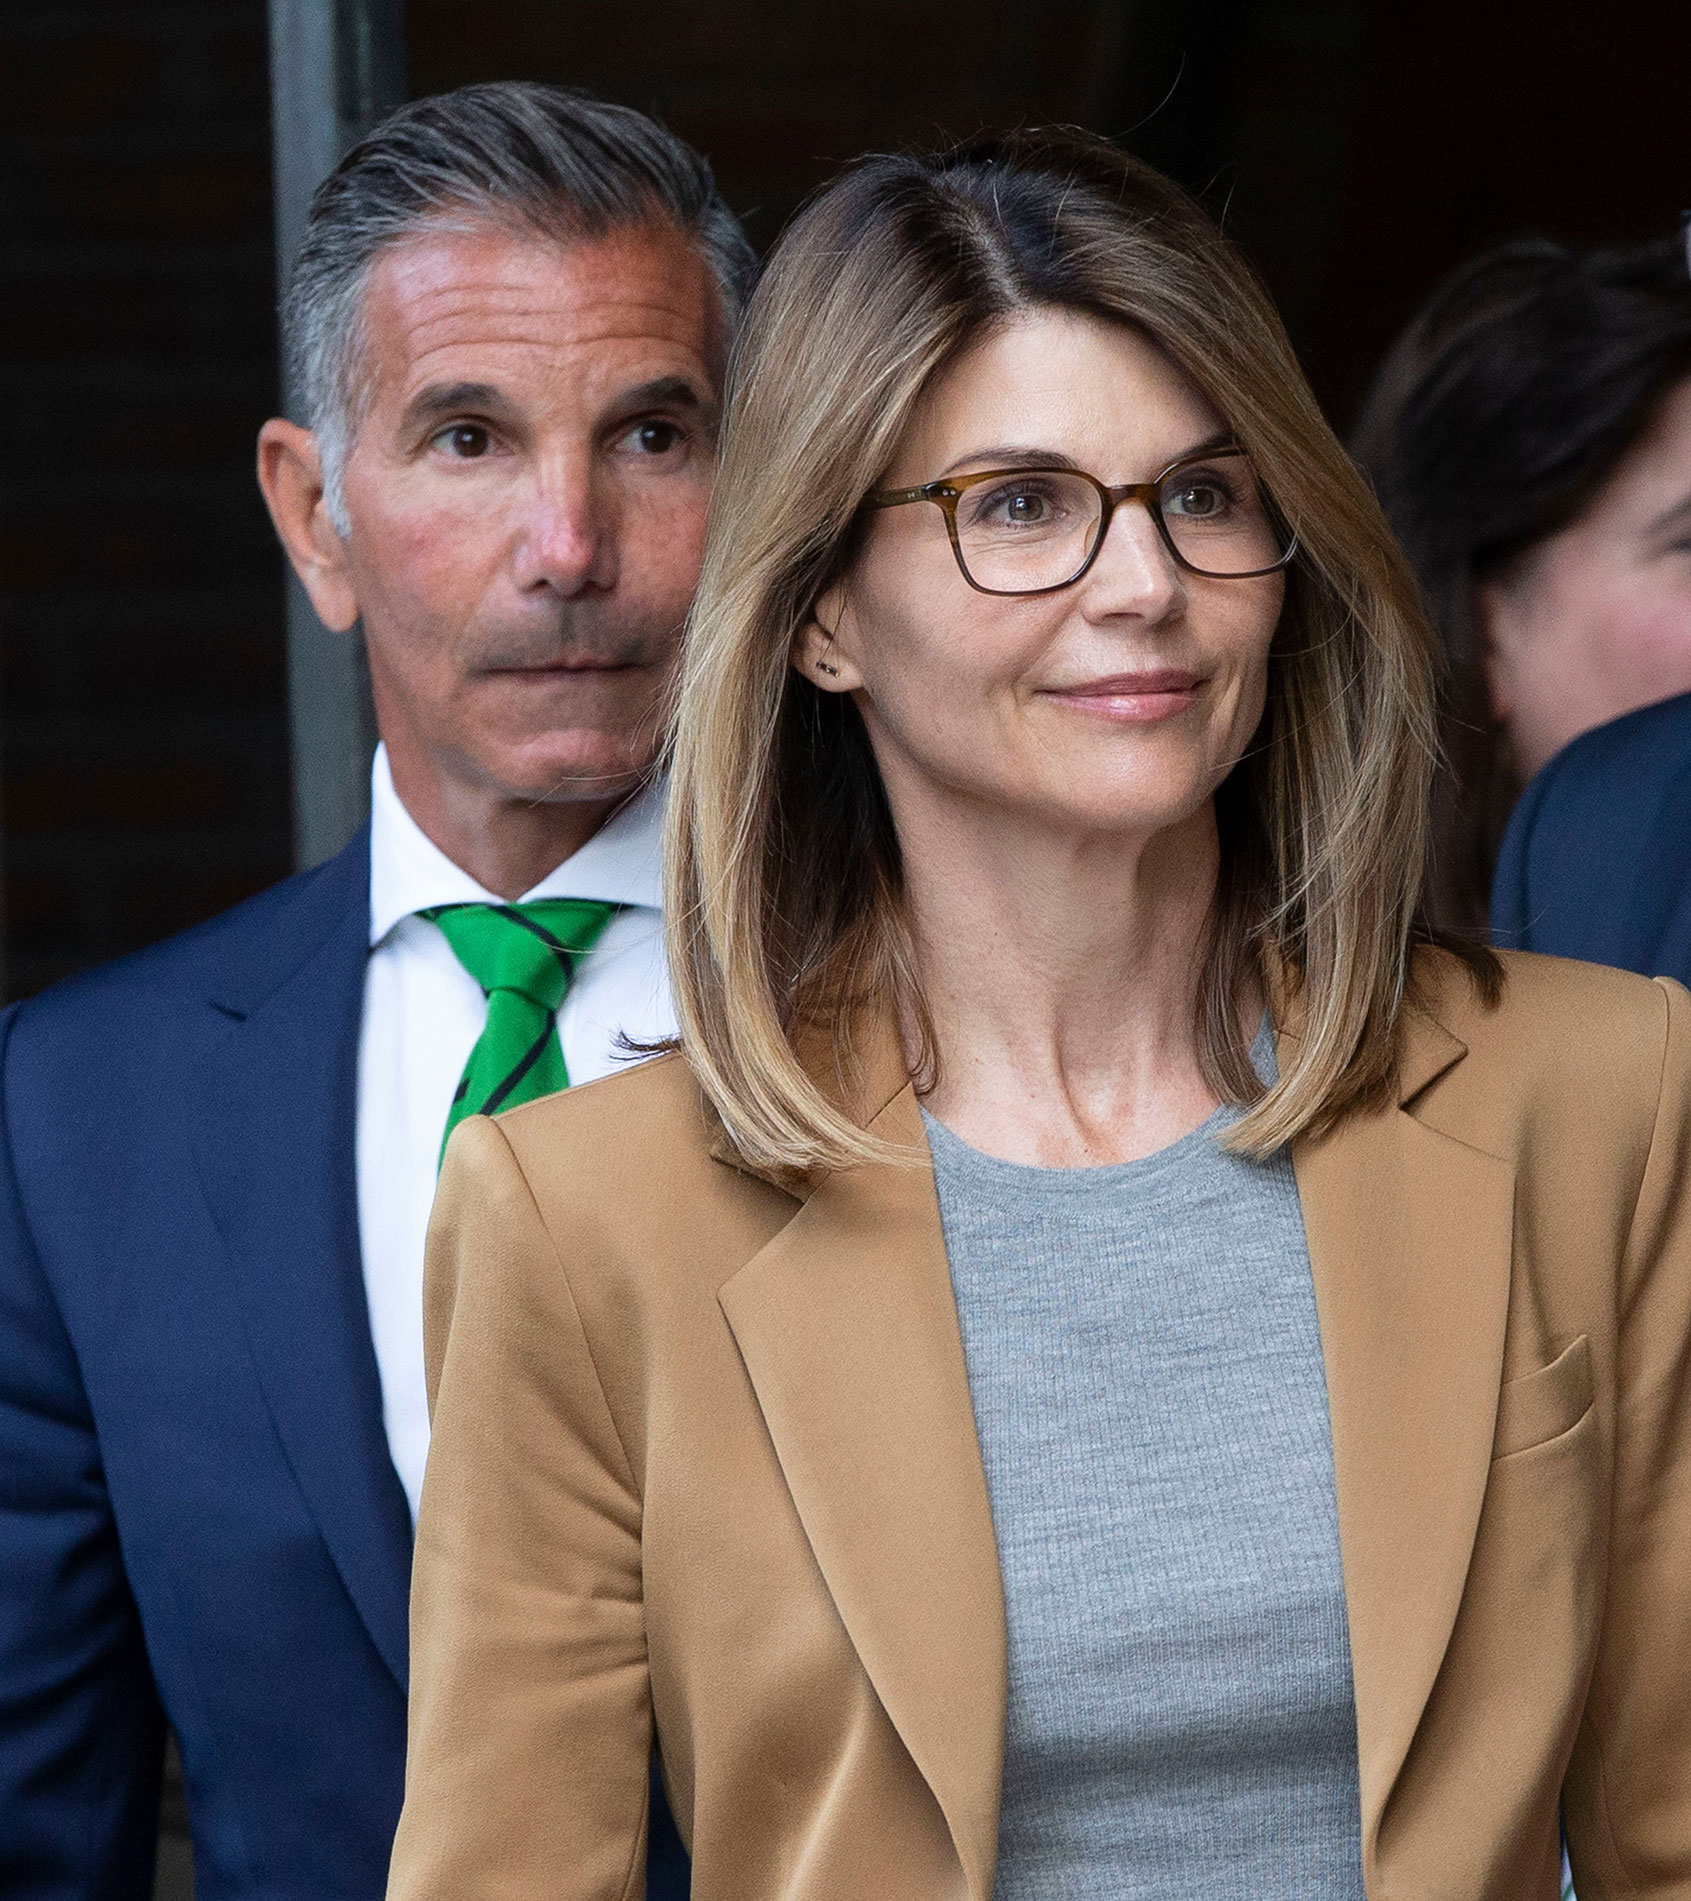 Lori Loughlin and Mossimo Giannulli Rowing Resume Released